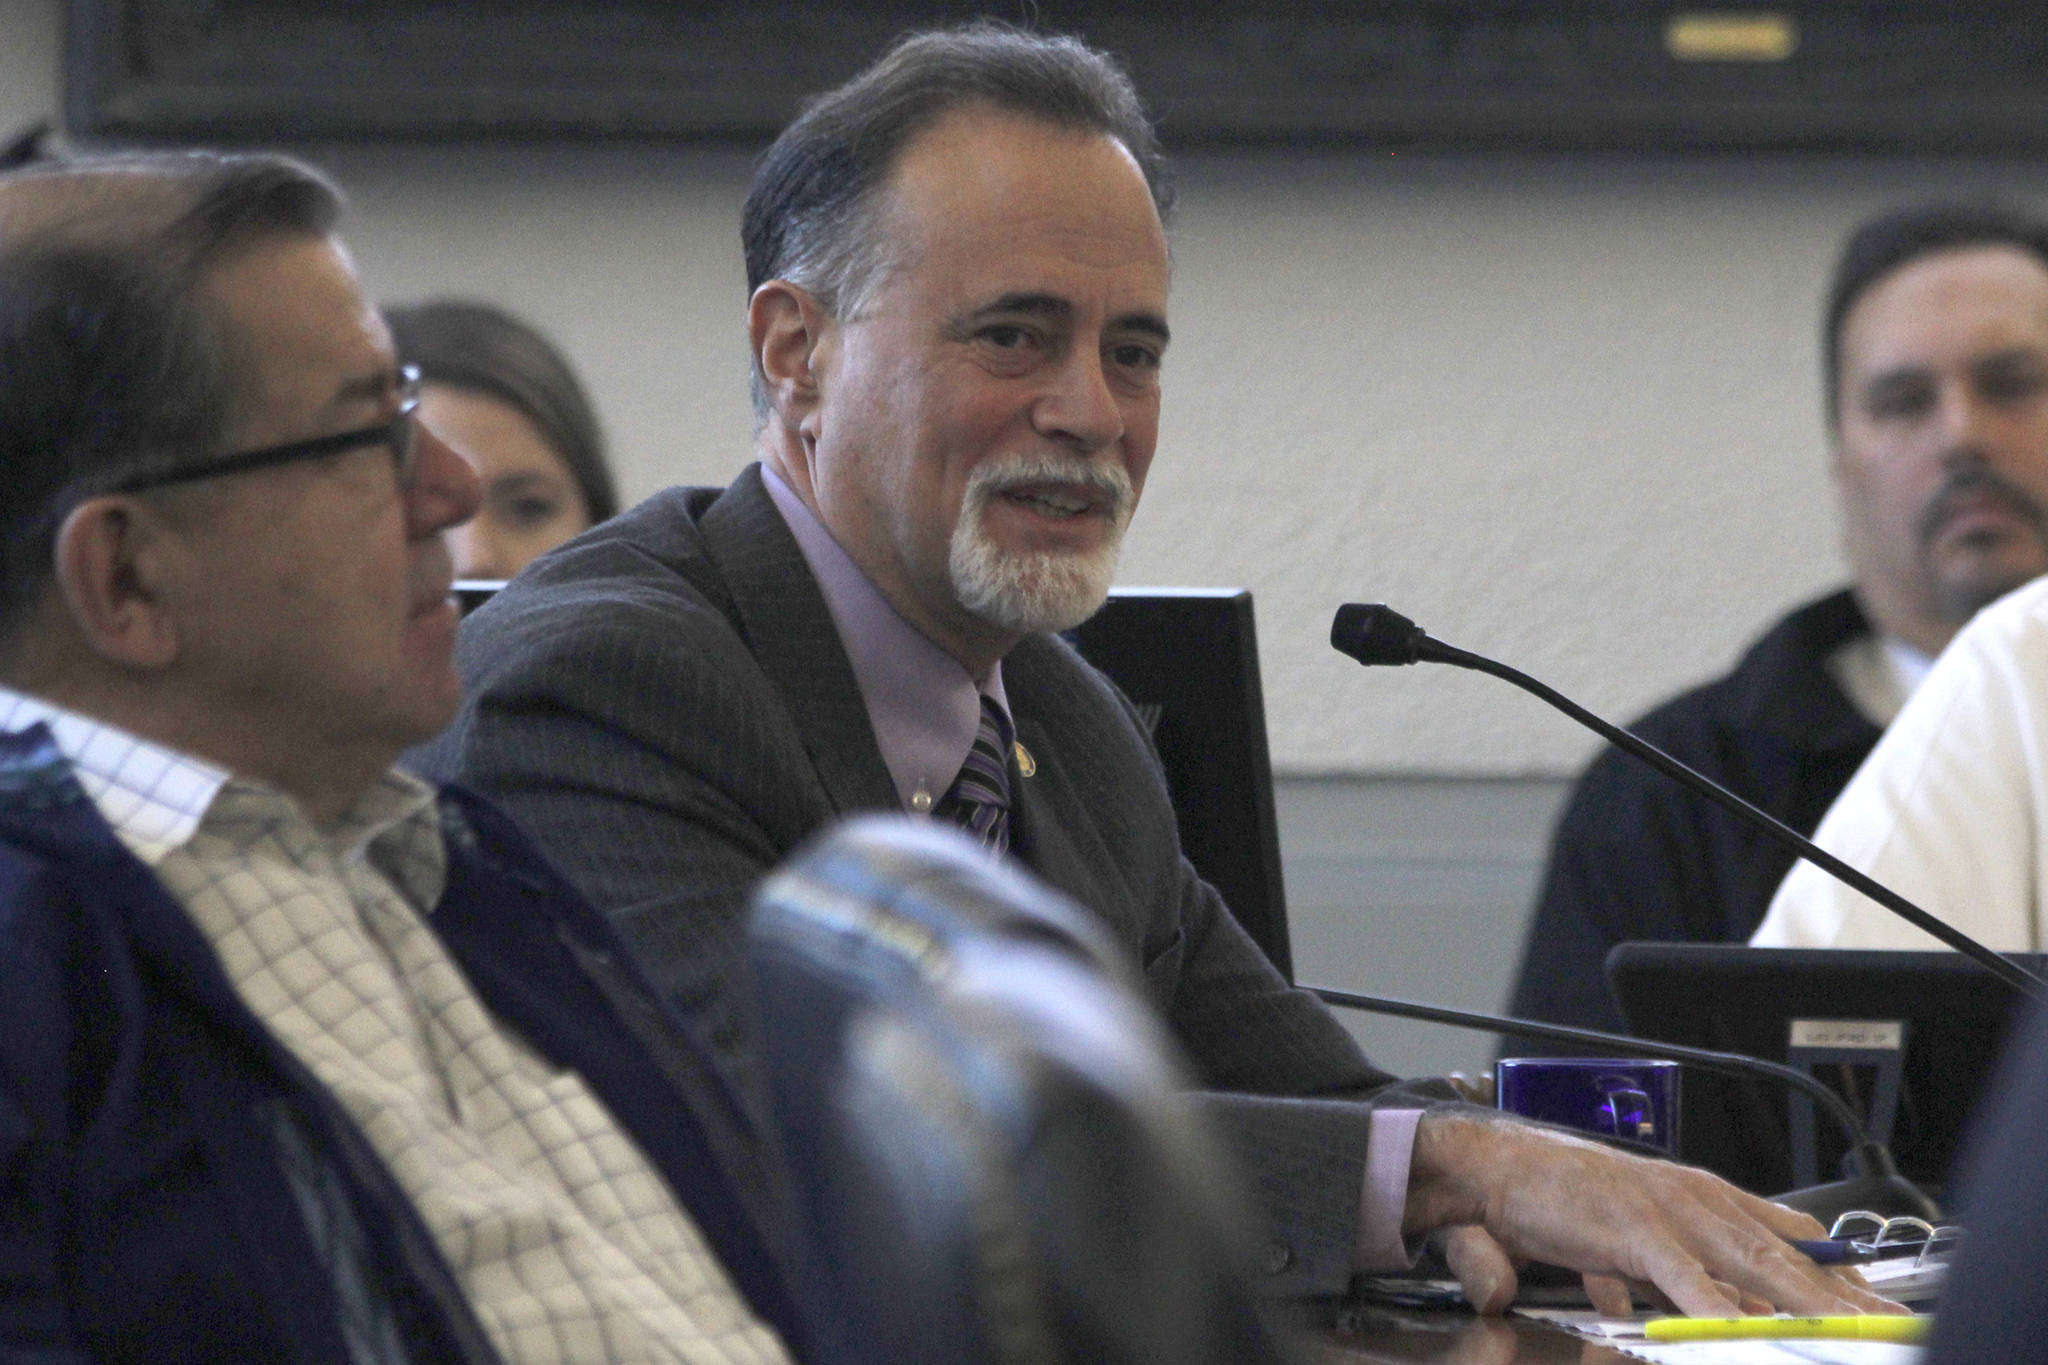 Sen. Peter Micciche, R-Soldotna, poses questions to Department of Corrections and Office of Management and Budget officials during a Senate Finance Committee meetingon Friday, Feb. 15, 2019. (Alex McCarthy | Juneau Empire)